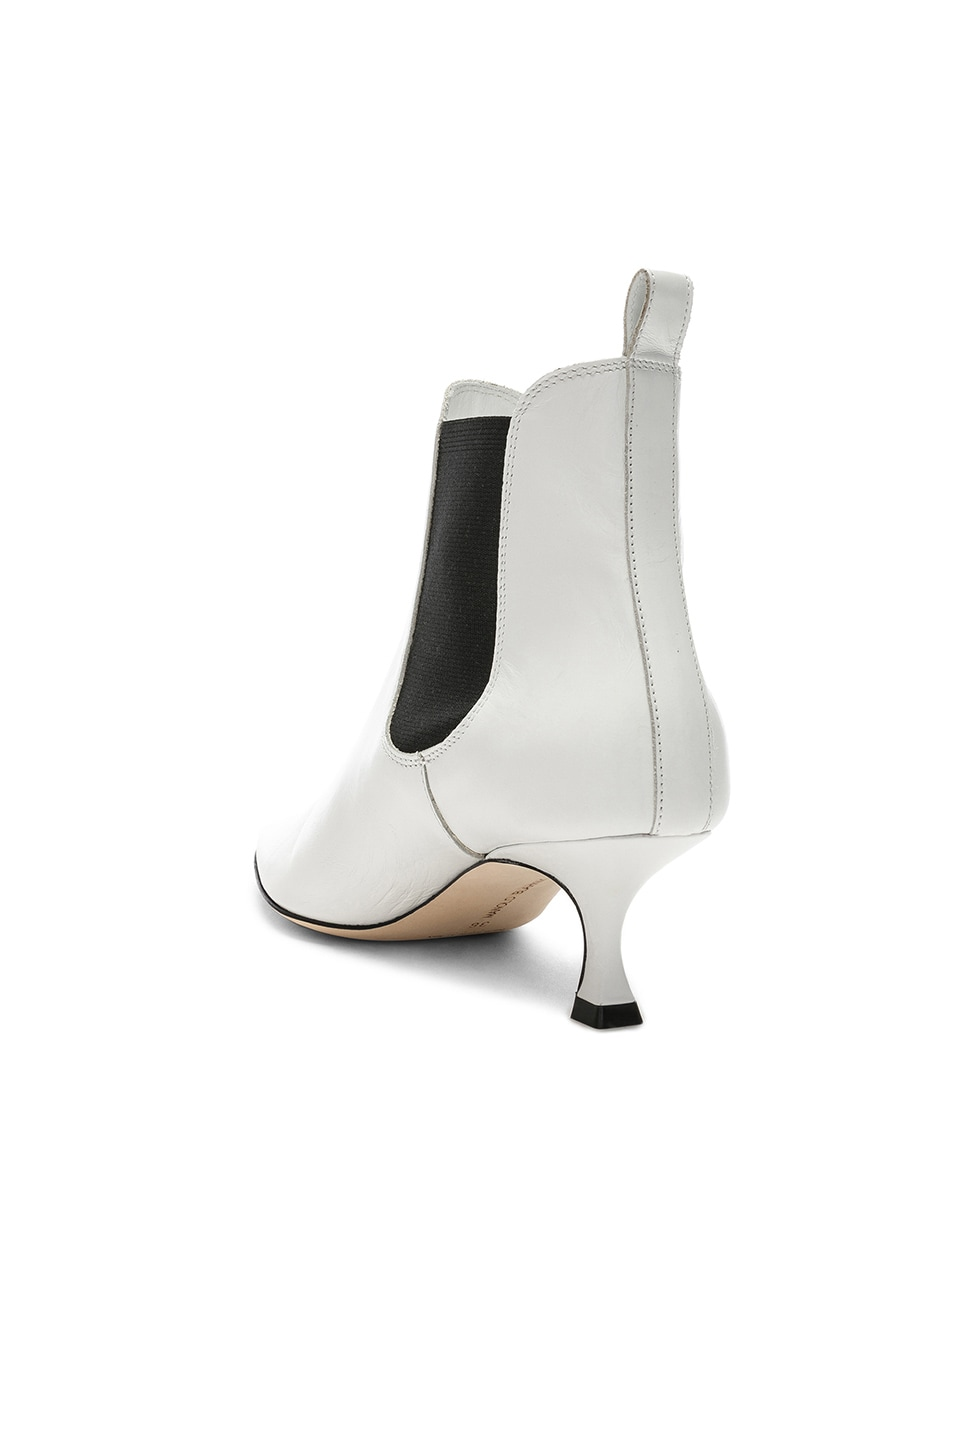 Image 3 of Manolo Blahnik Leather Chelsa 50 Boots in White